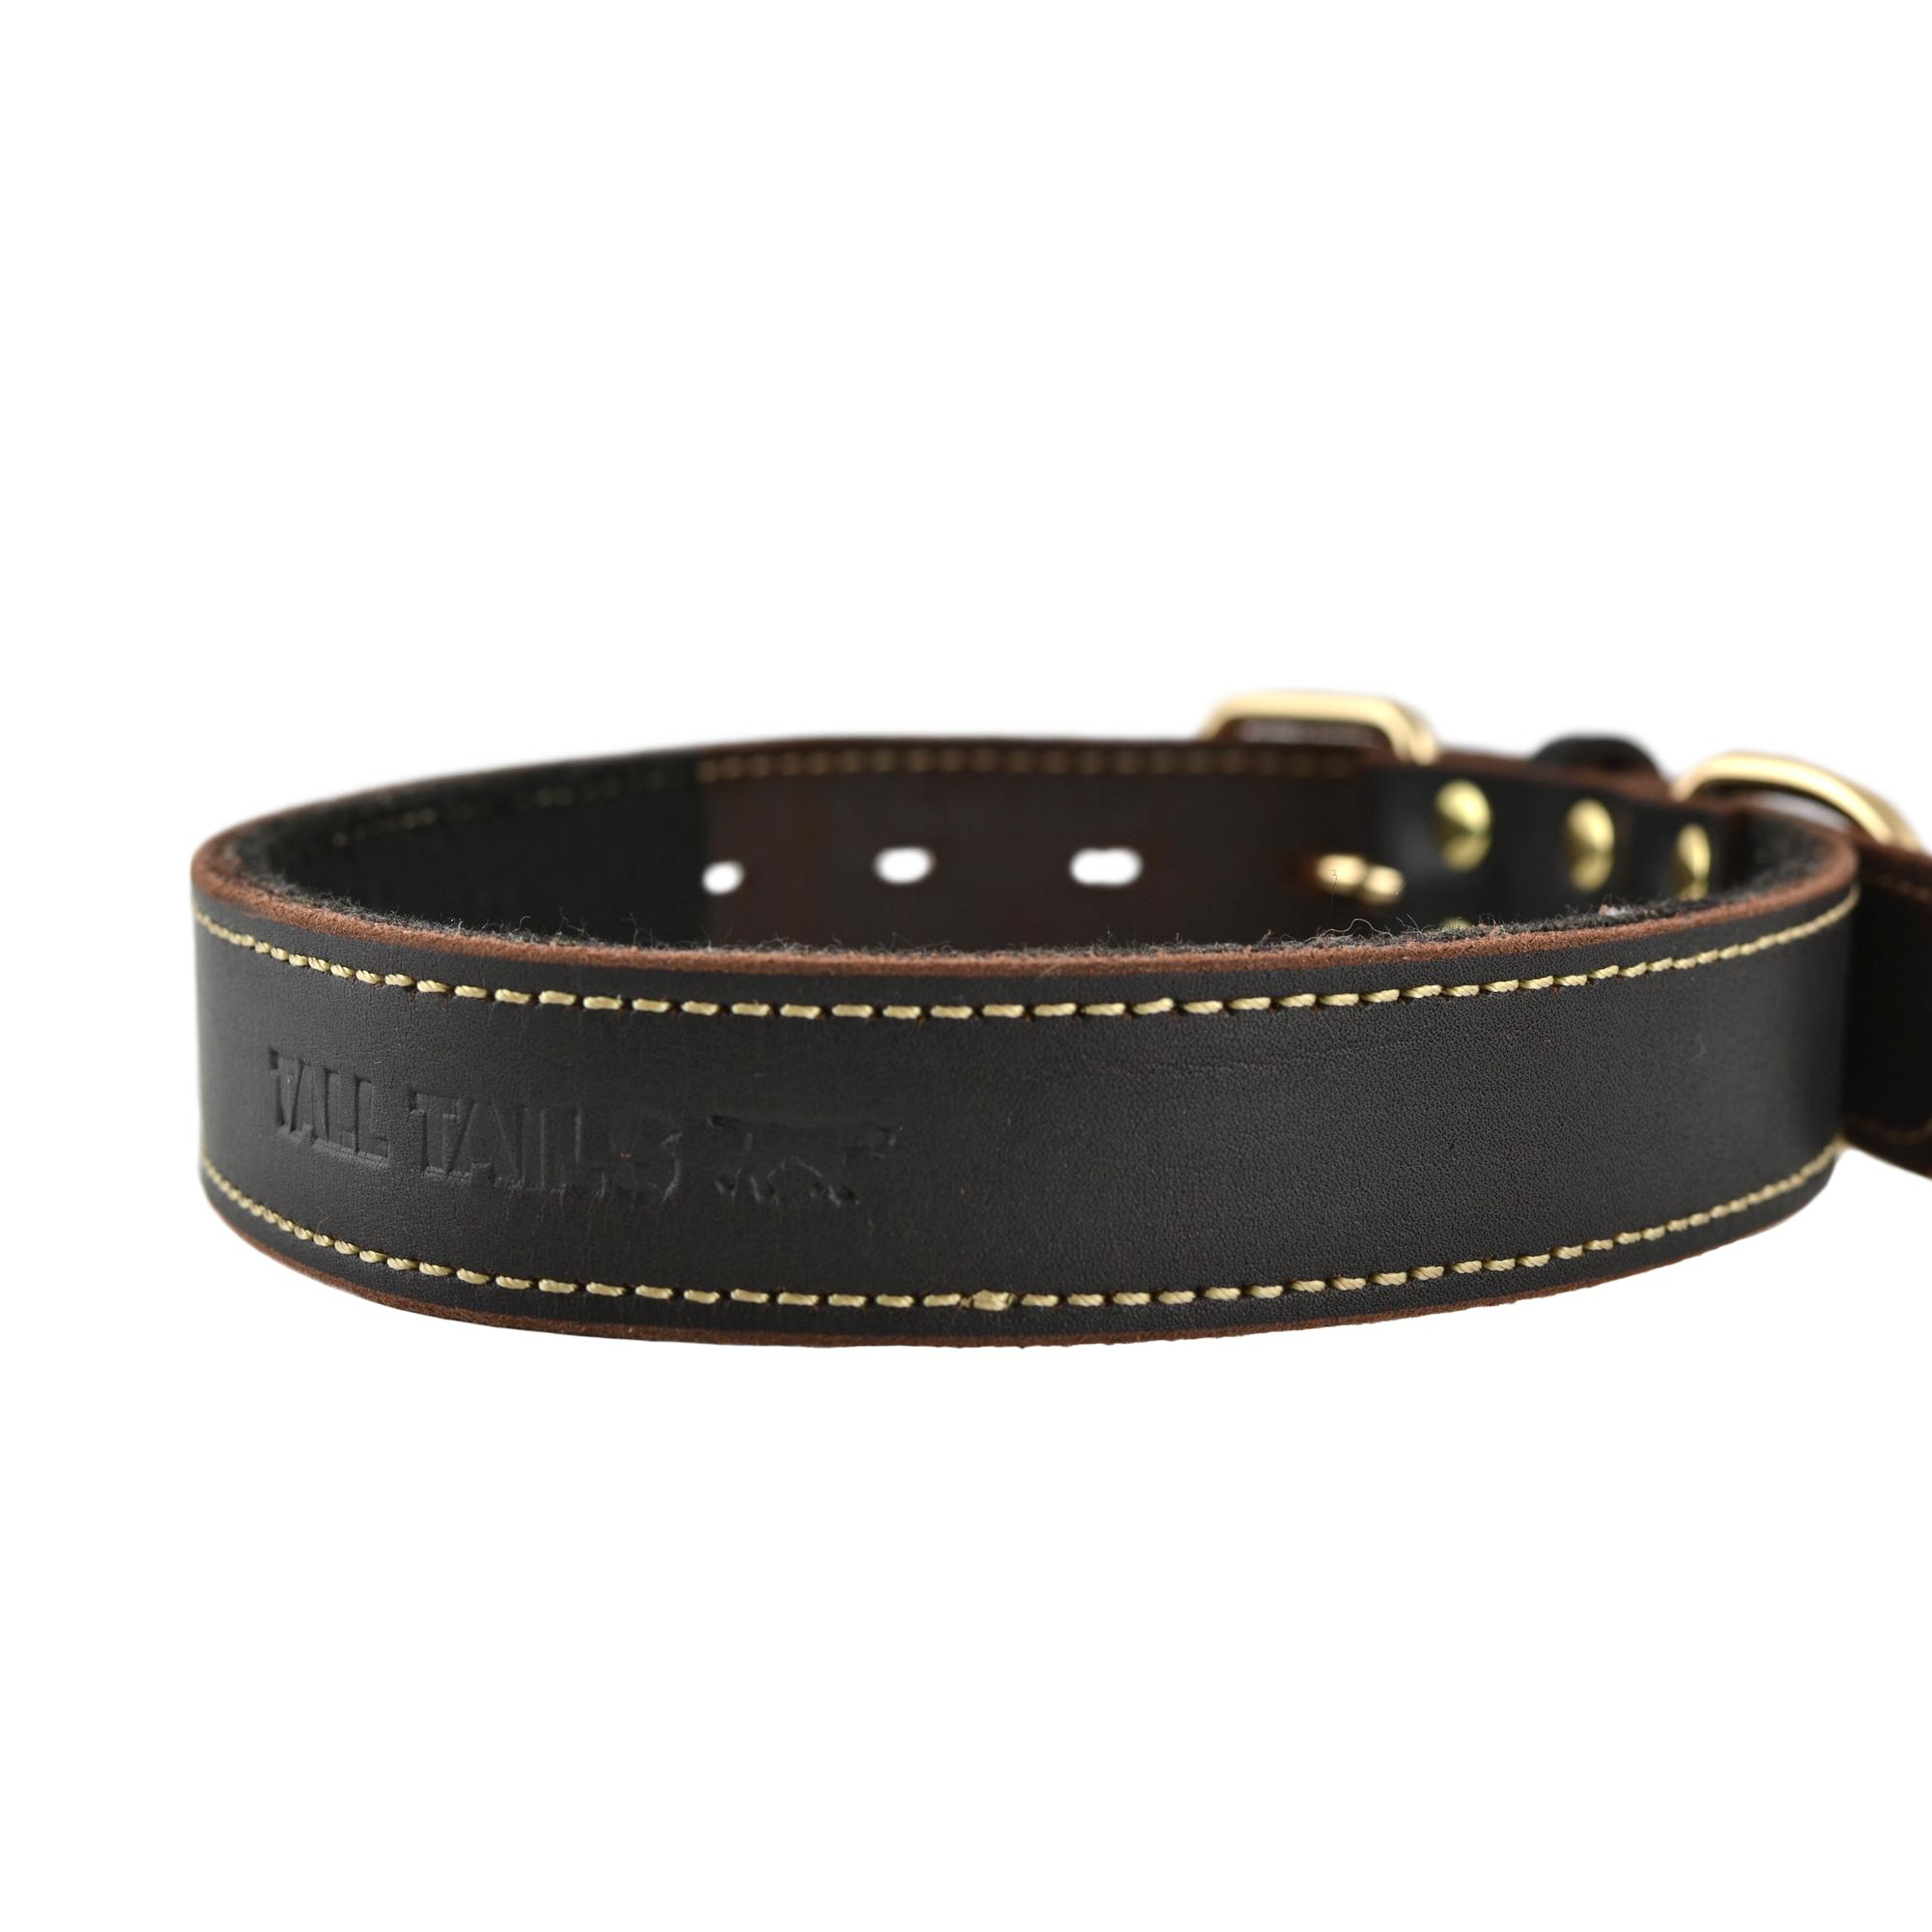 Tall Tails Genuine Leather Dog Collar Image